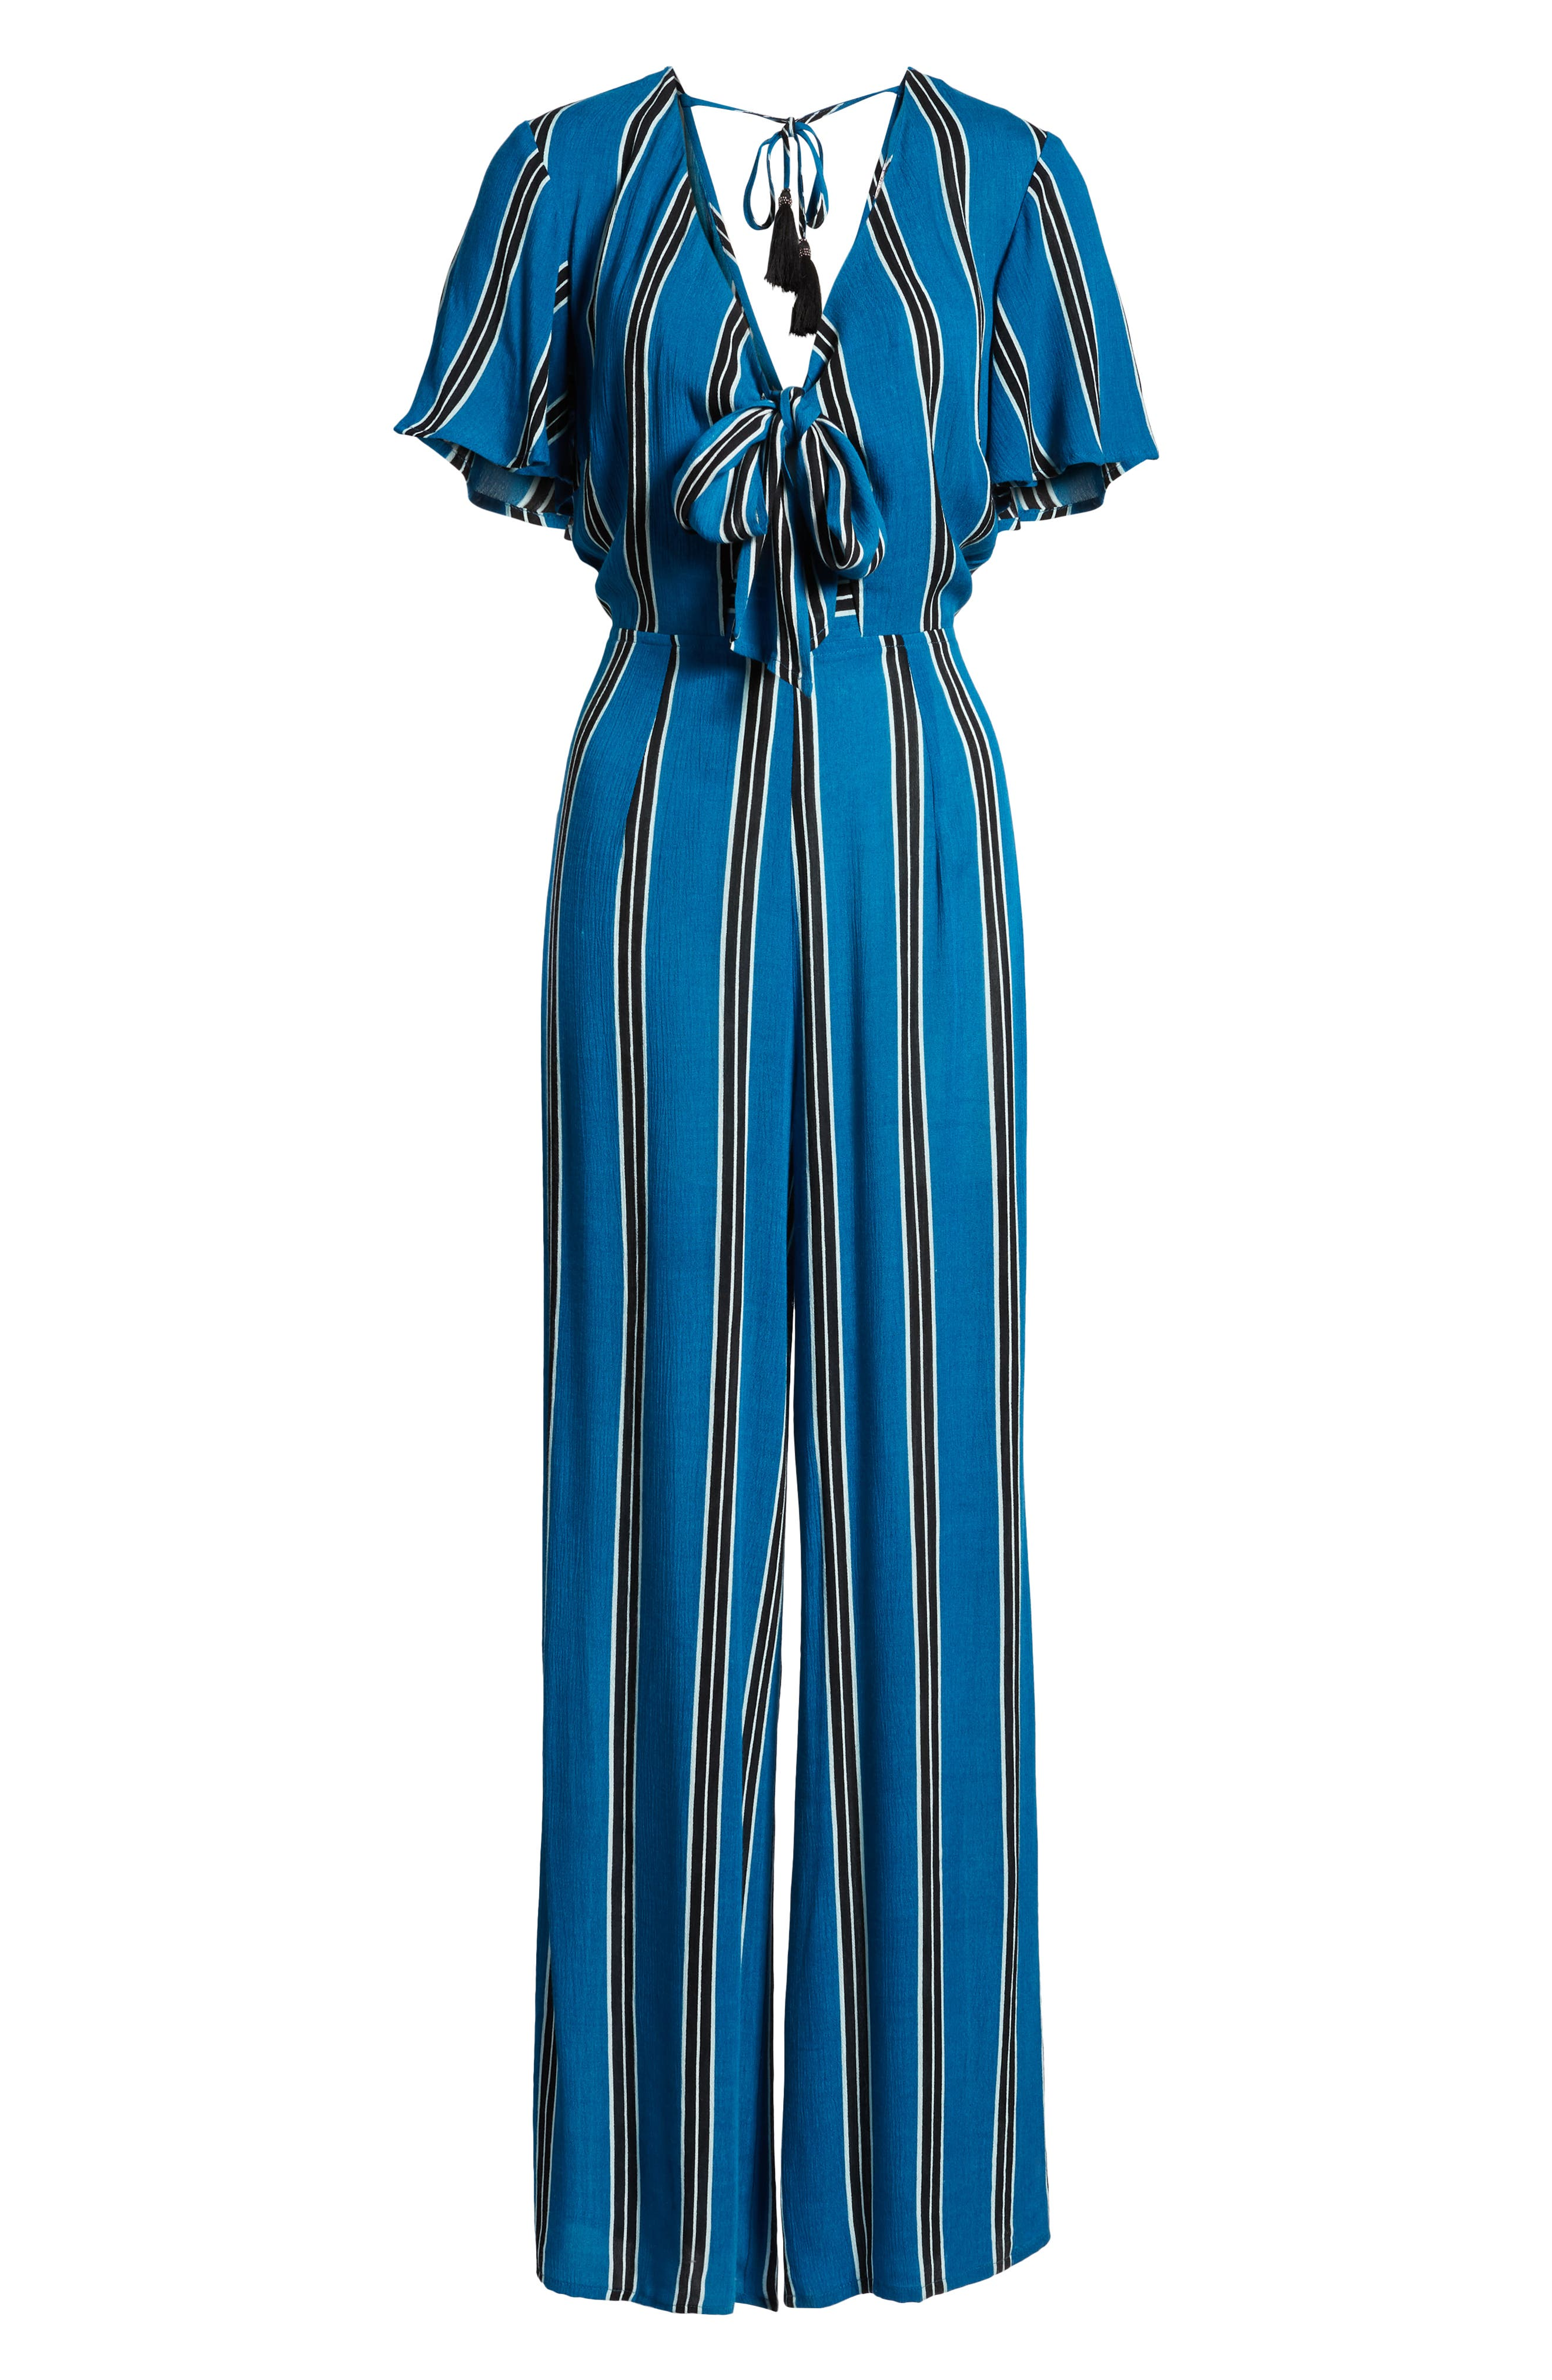 BAND OF GYPSIES,                             Knot Front Stripe Jumpsuit,                             Alternate thumbnail 6, color,                             400